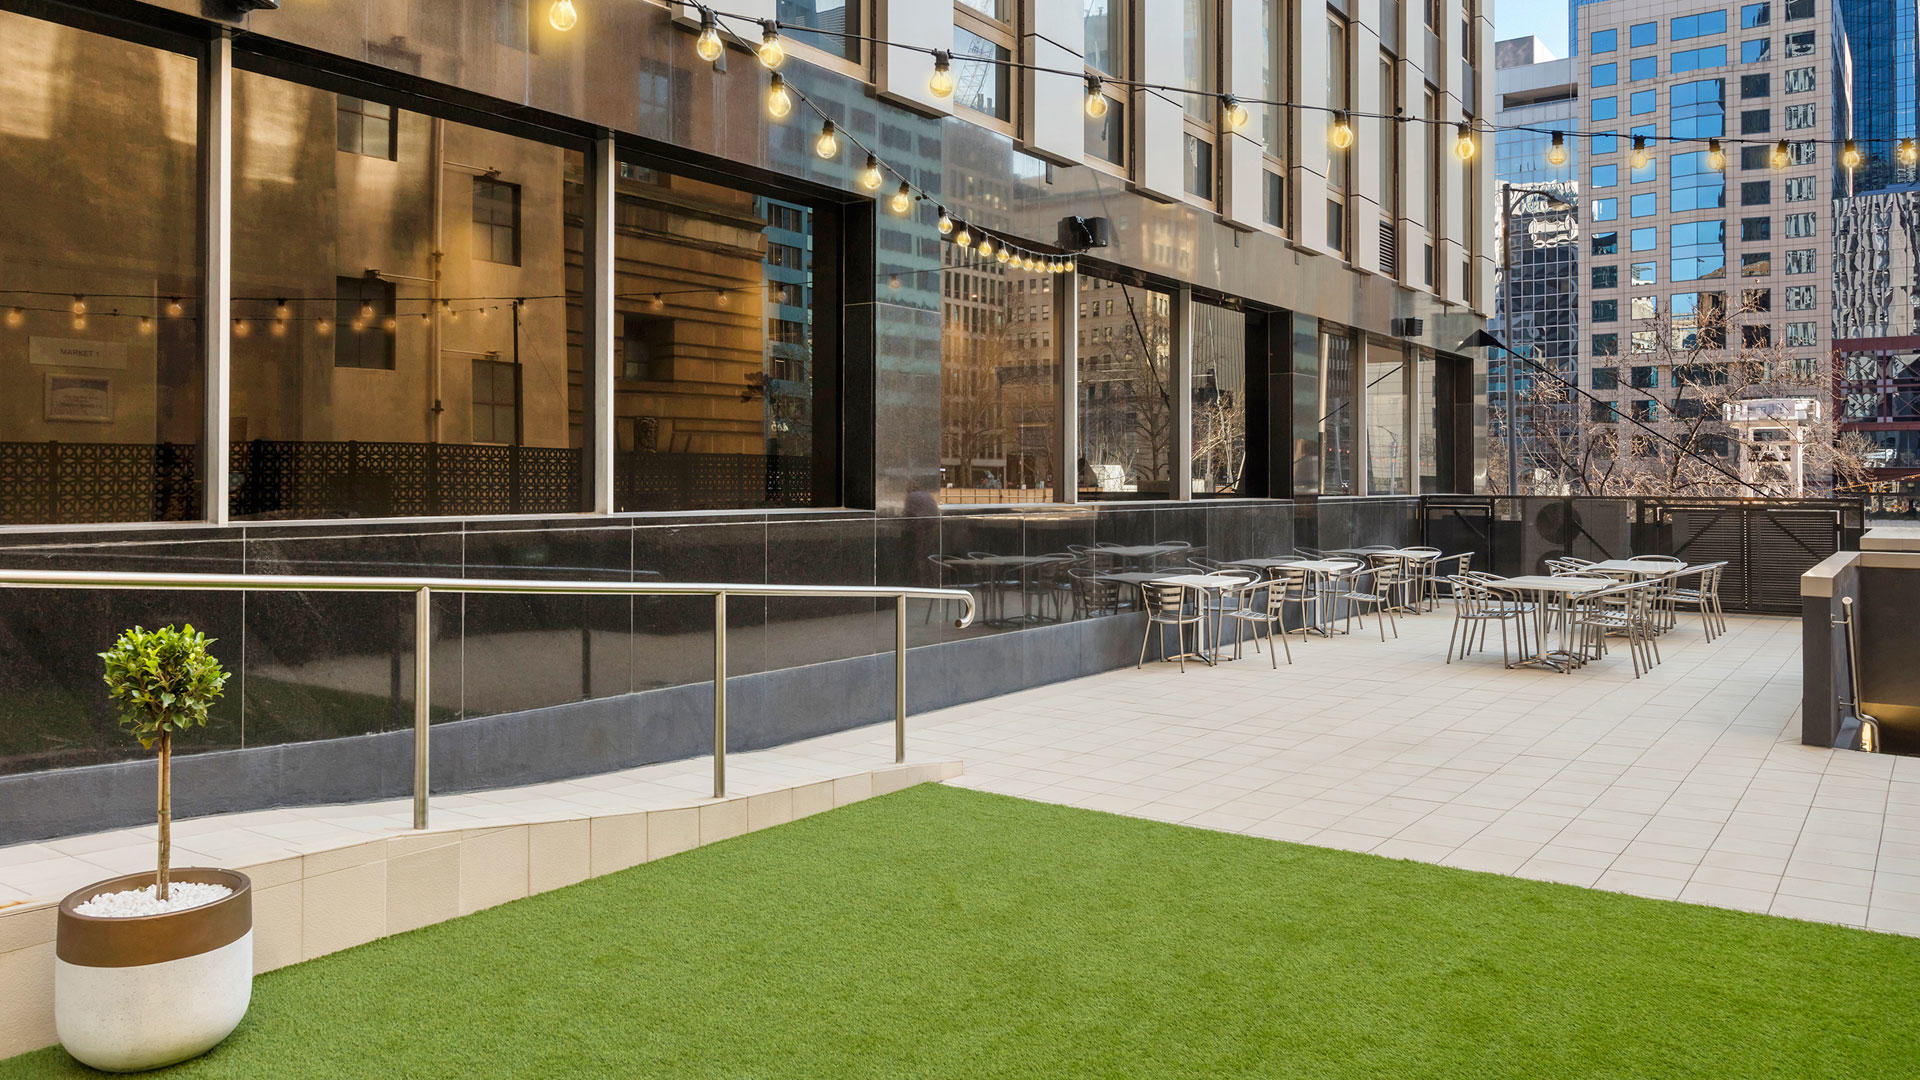 OaksMarket_OutdoorTerrace